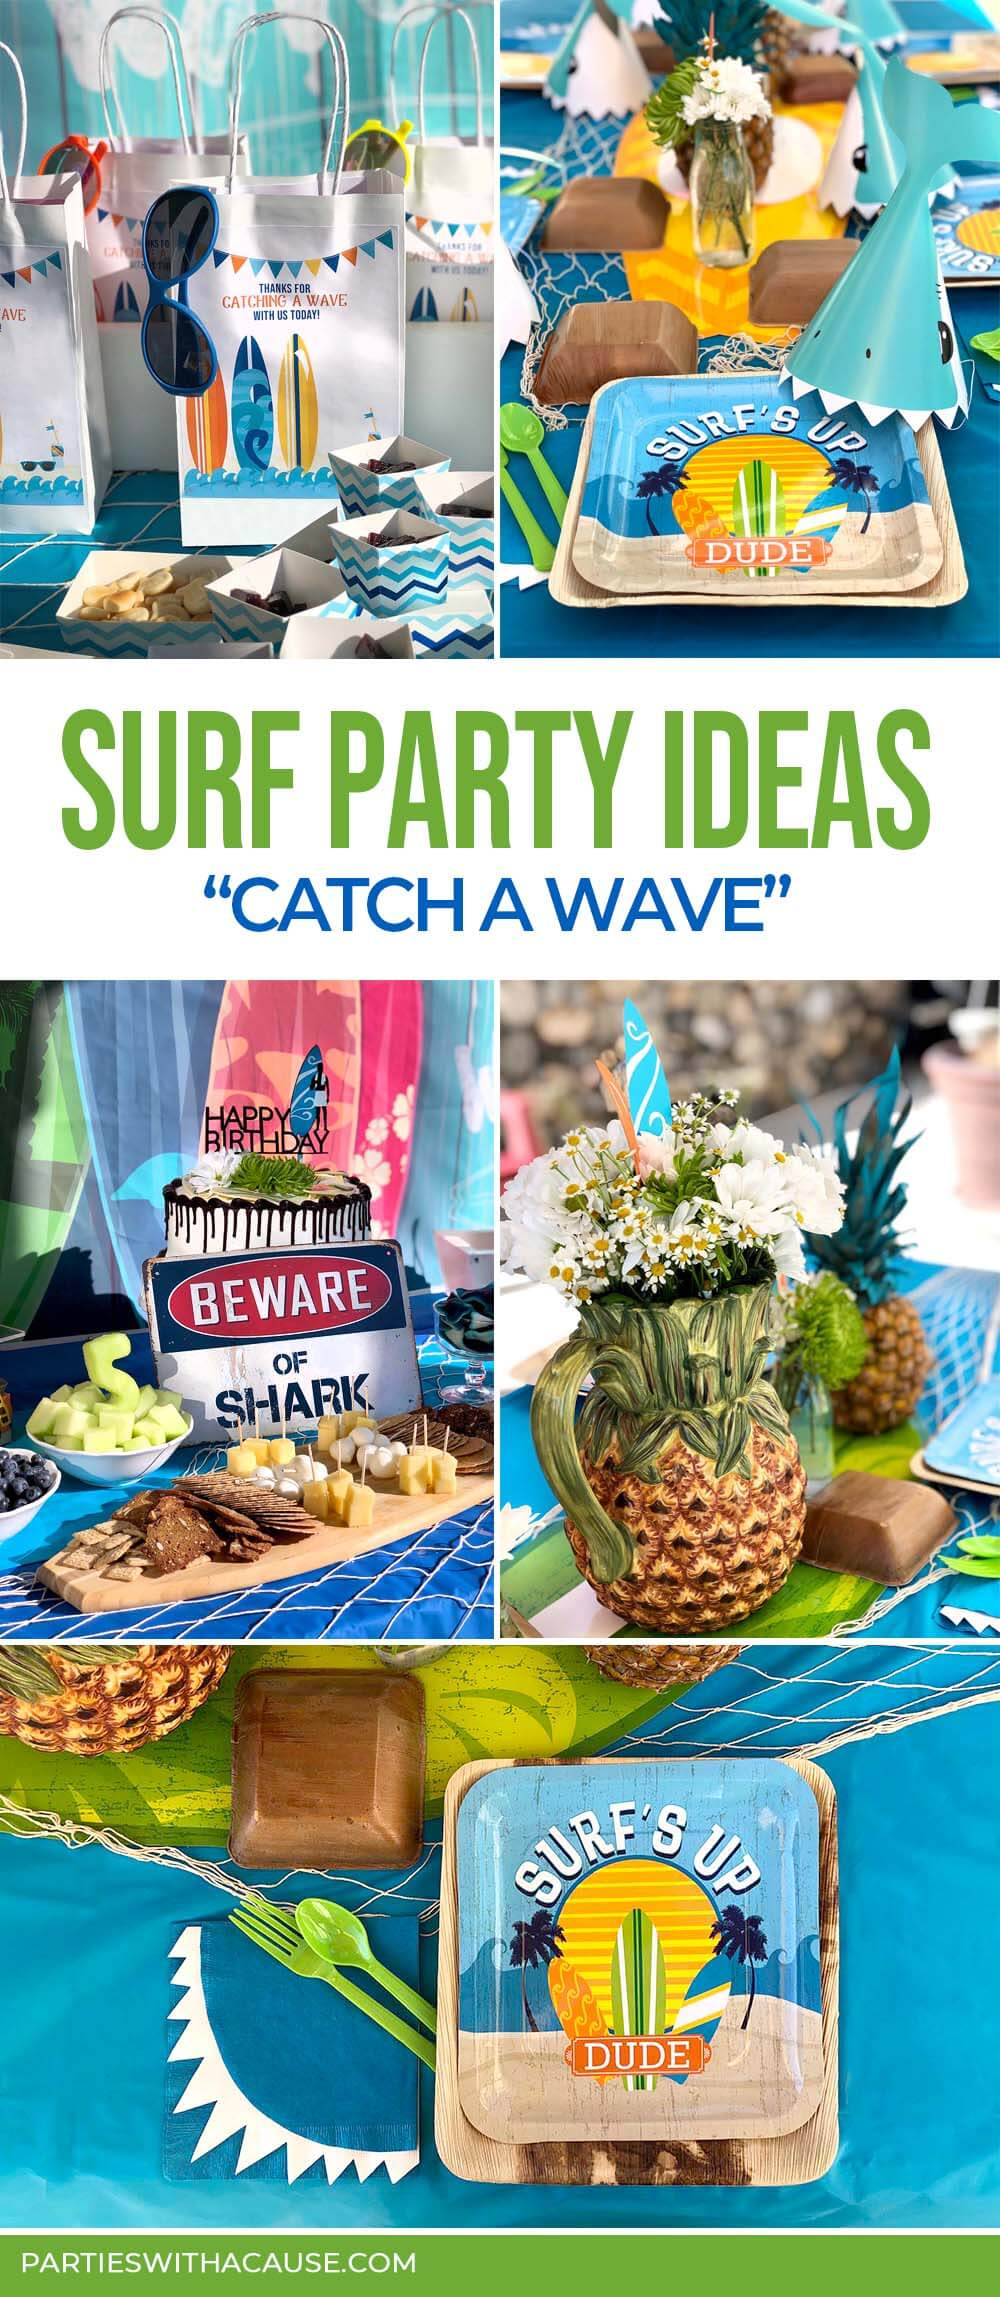 Surf party ideas to catch a wave by Salt Lake Party Stylist